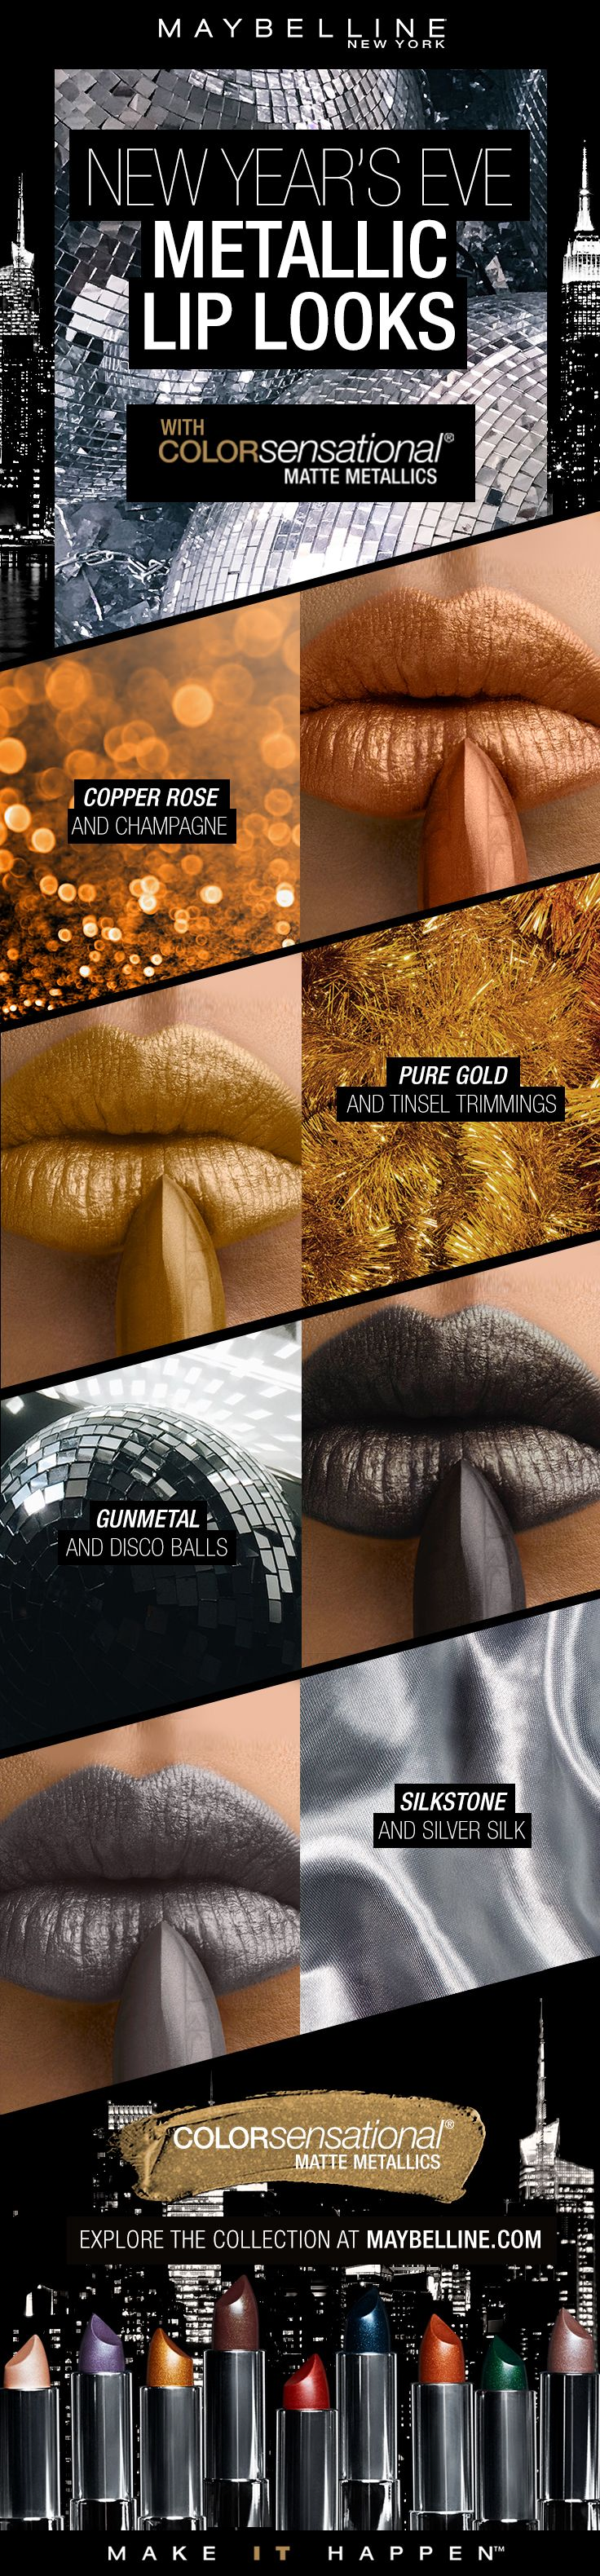 The holiday season is the perfect time to test out festive metallic lipsticks!  Amp up your holiday makeup look with a pop of metallic sheen with the Maybelline Matte Metallics Lipsticks!  Pair your New Years Eve makeup vibe with the perfect metallic lipstick!